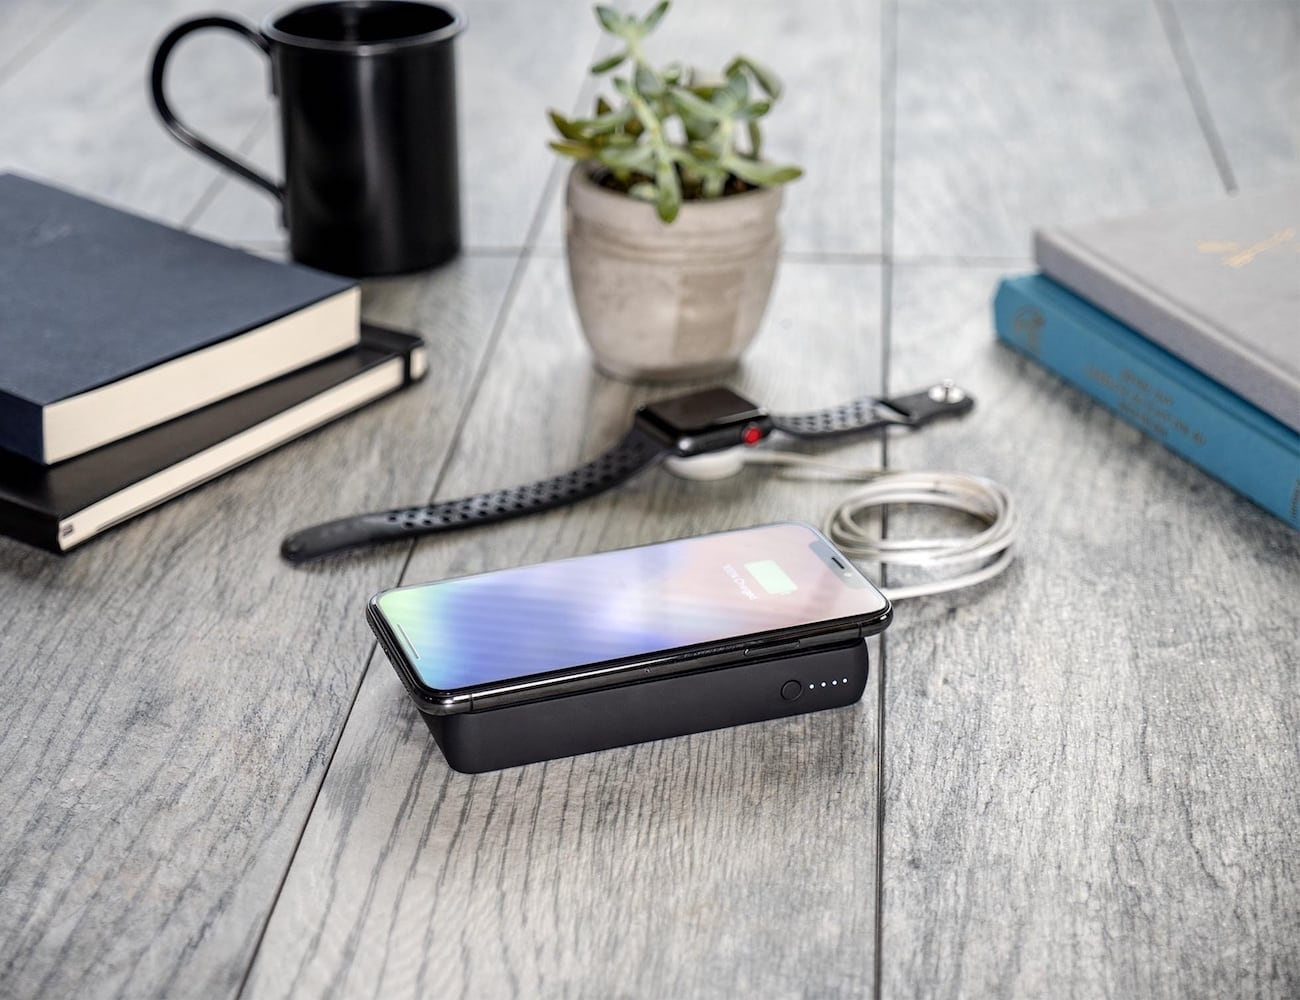 mophie charge stream powerstation wireless XL with Lightning connector Power Bank provides 10,000 mAh